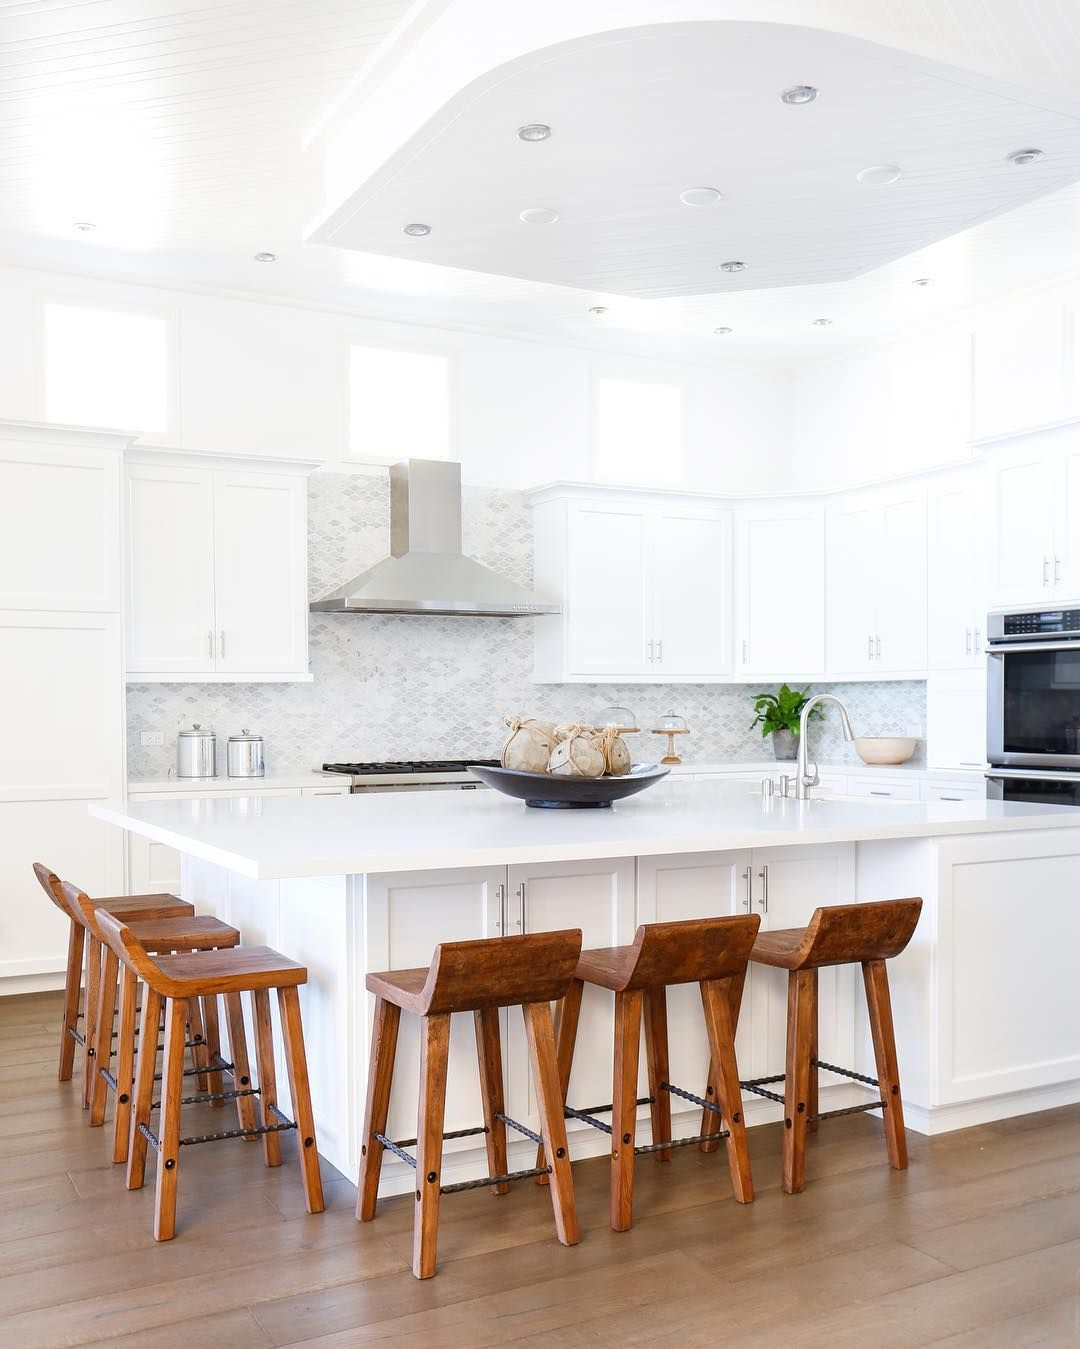 Bright white kitchen goals part two of our #projectsanclemente ...